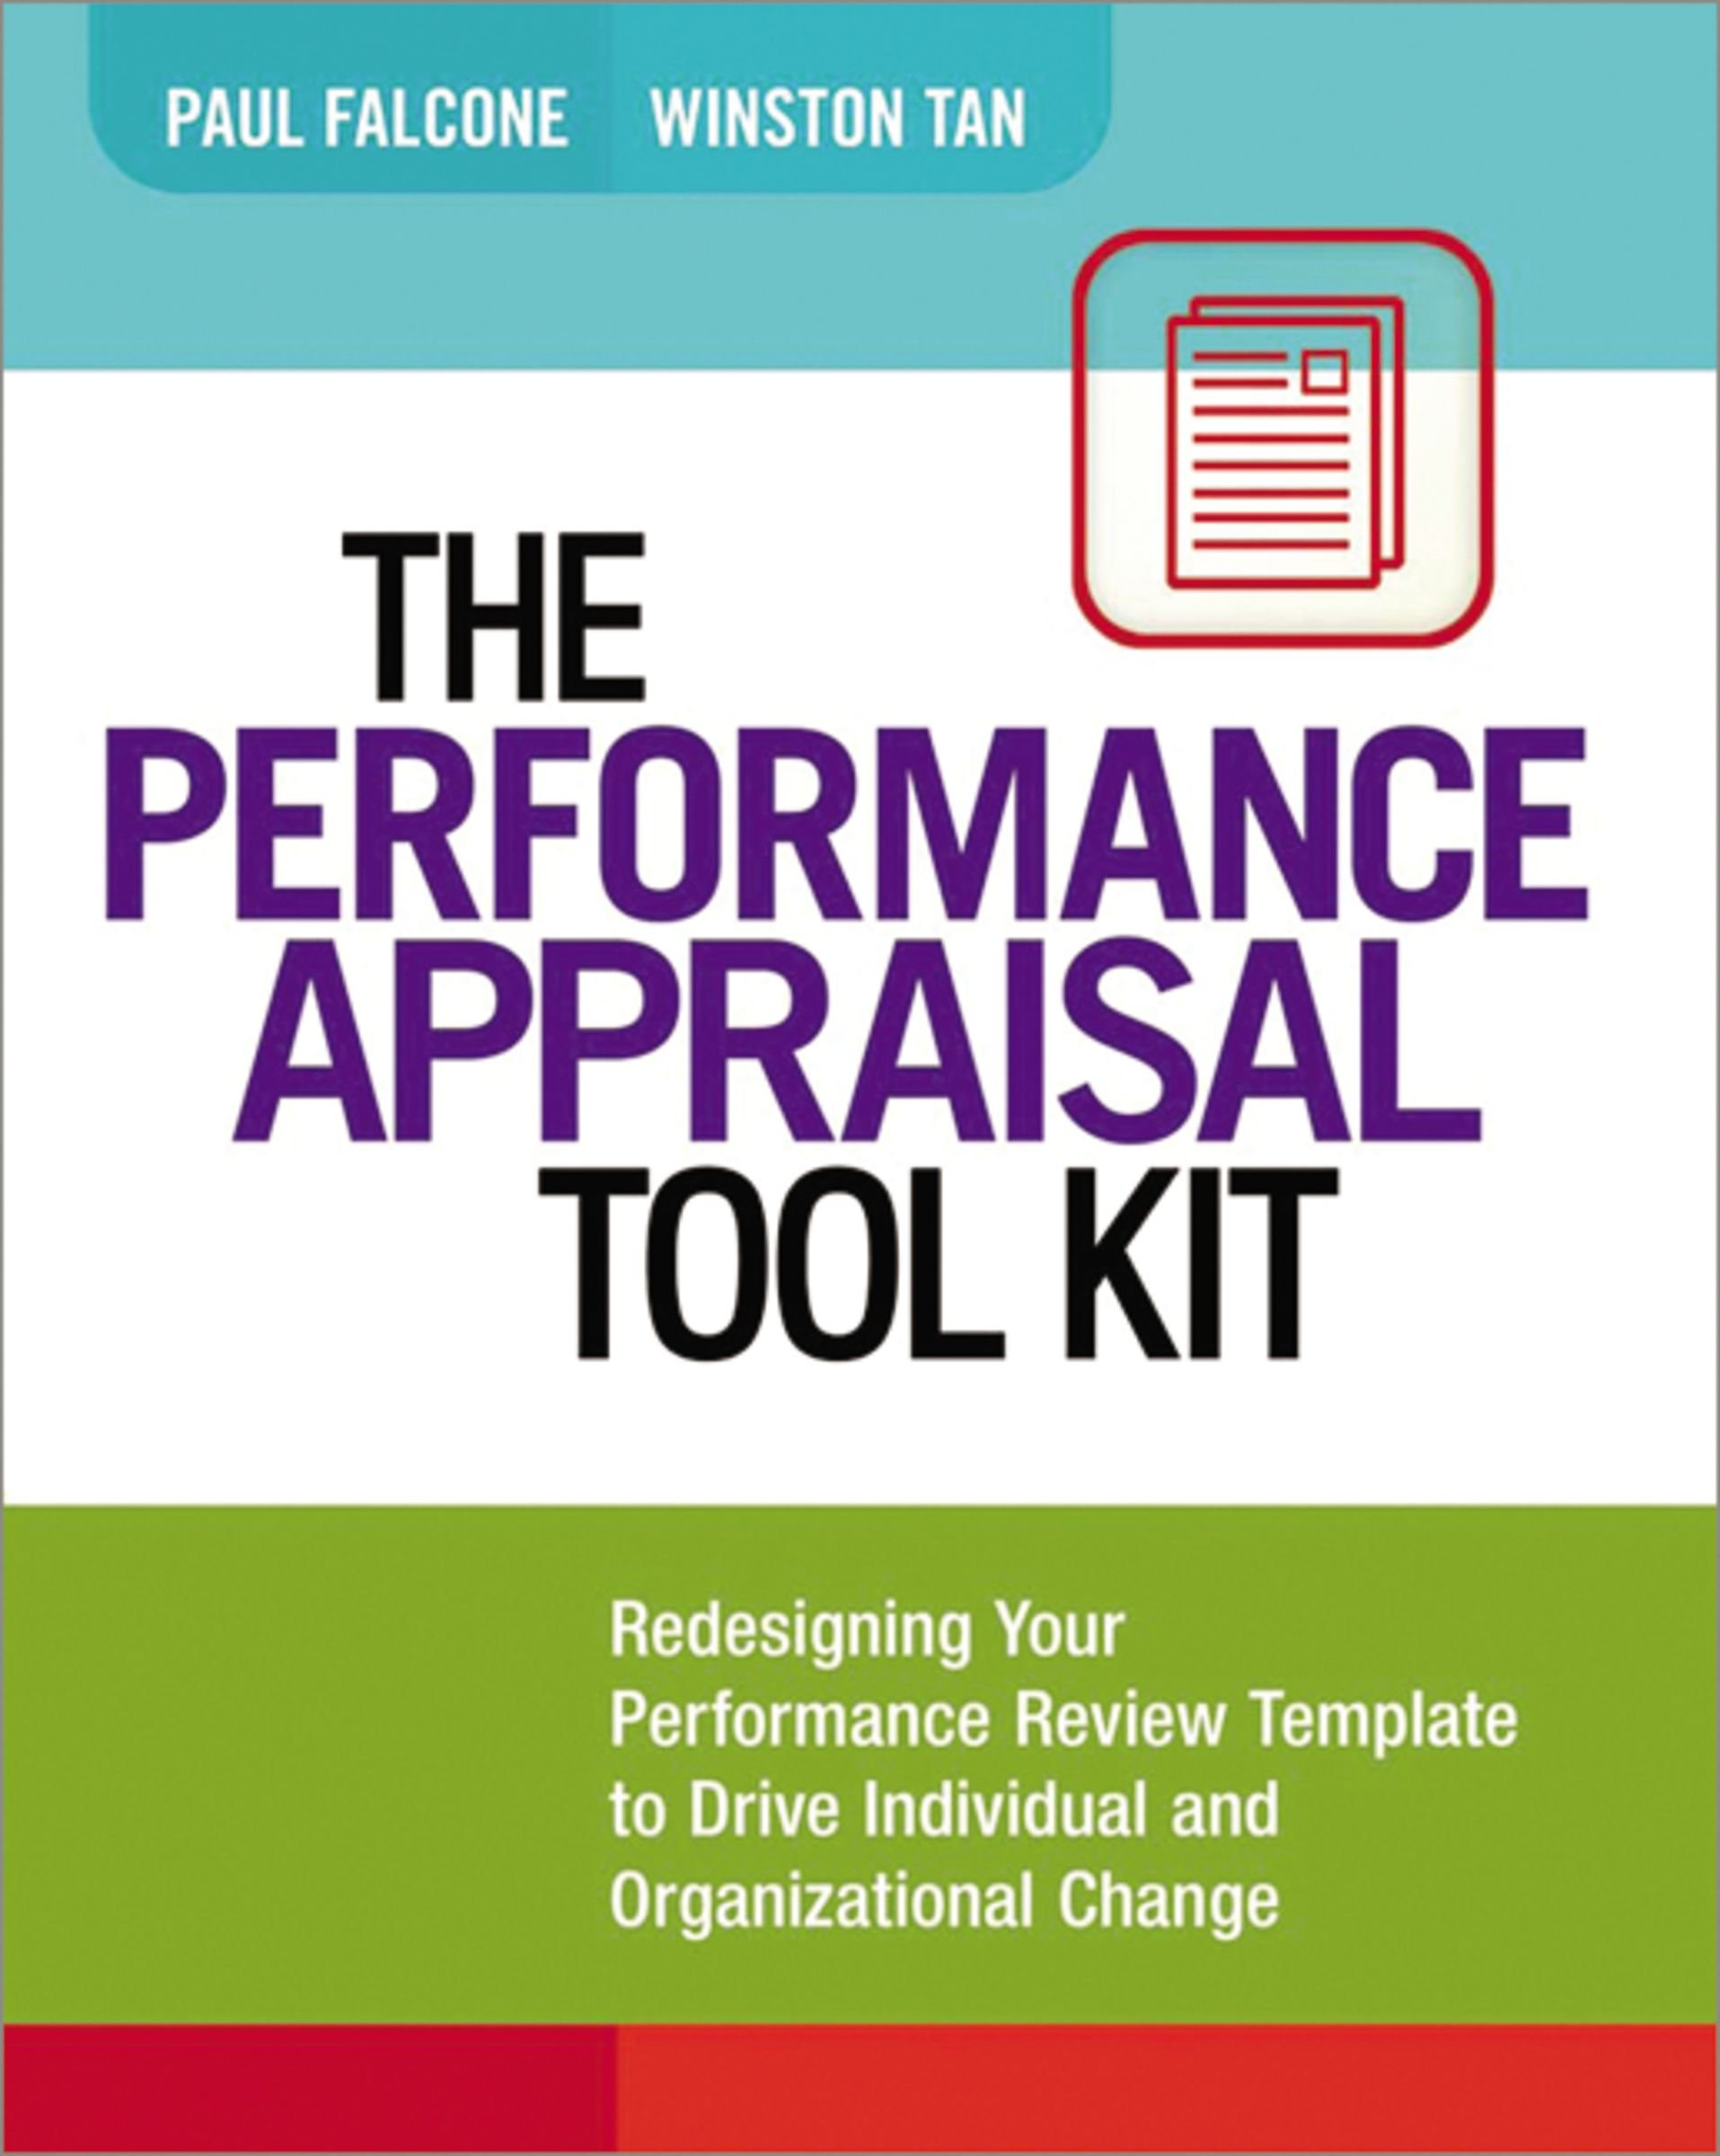 The Performance Appraisal Tool Kit Redesigning Your Performance